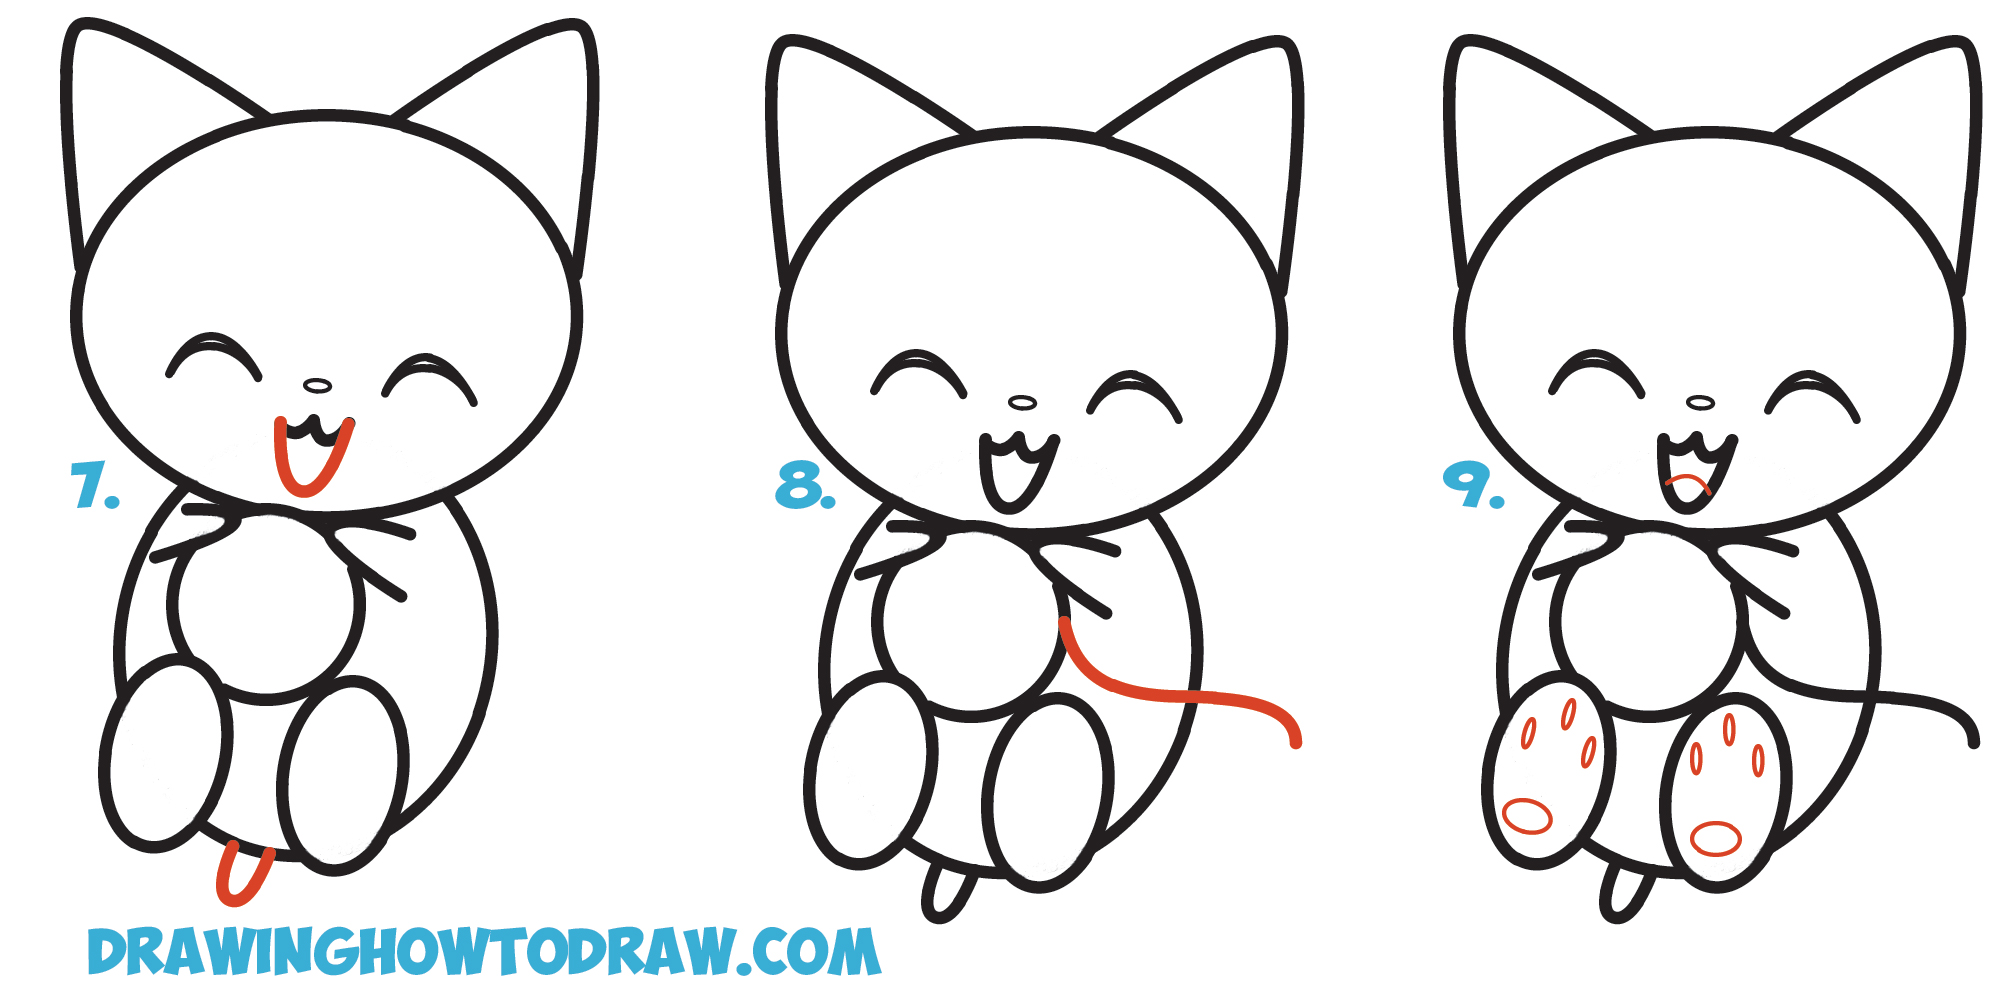 Learn How to Draw Cute Kawaii / Chibi / Cartoon Kitten / Cat Playing with Yarn Simple Steps Drawing Lesson for Beginners